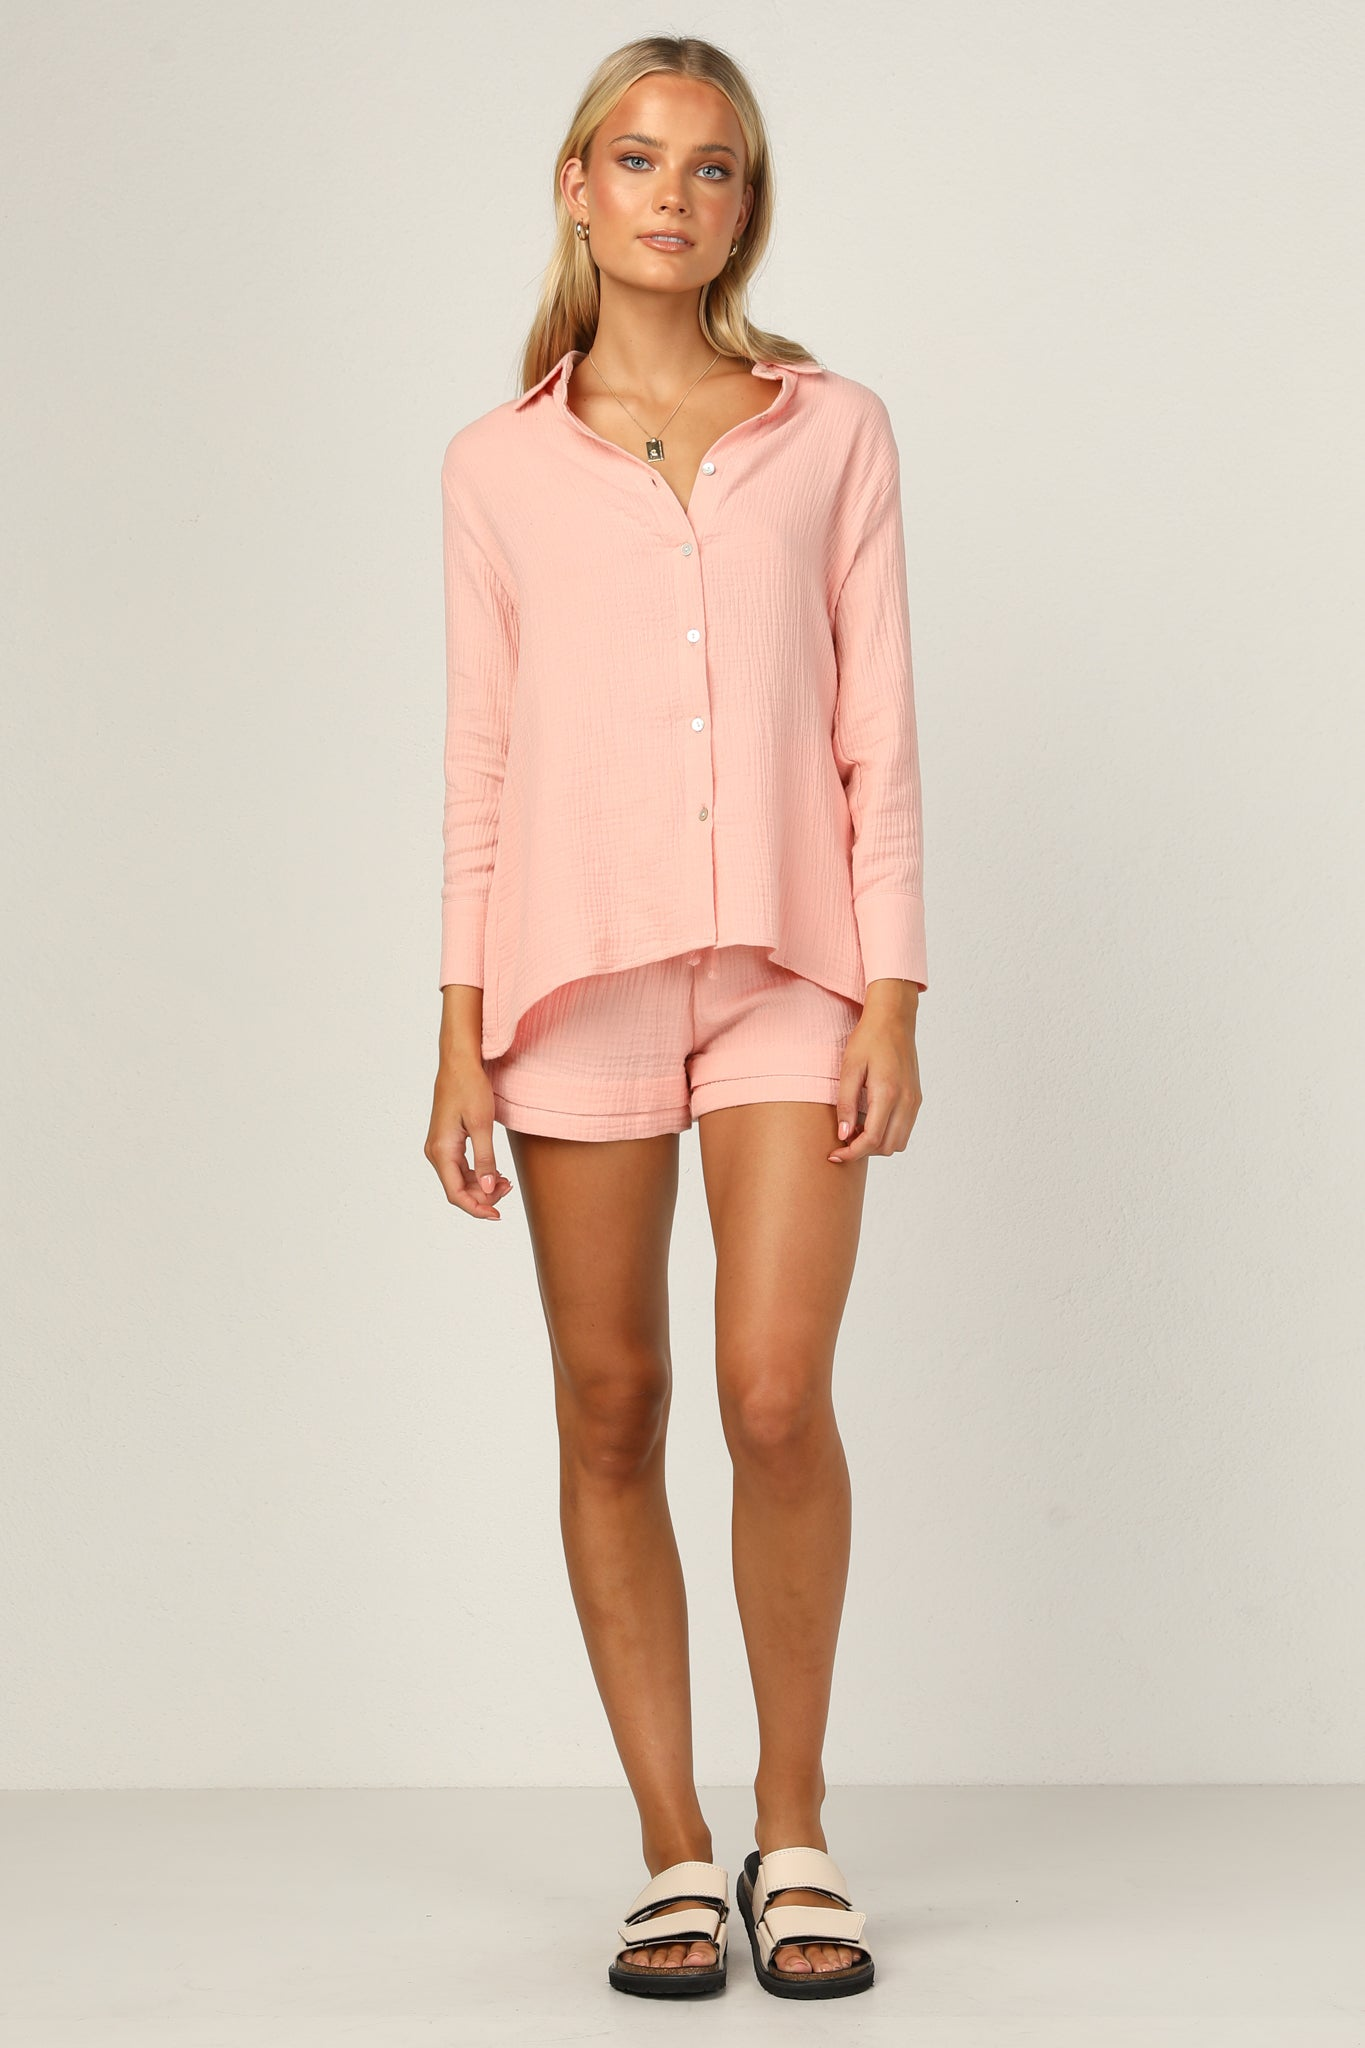 Cool Breeze Top (Pink)